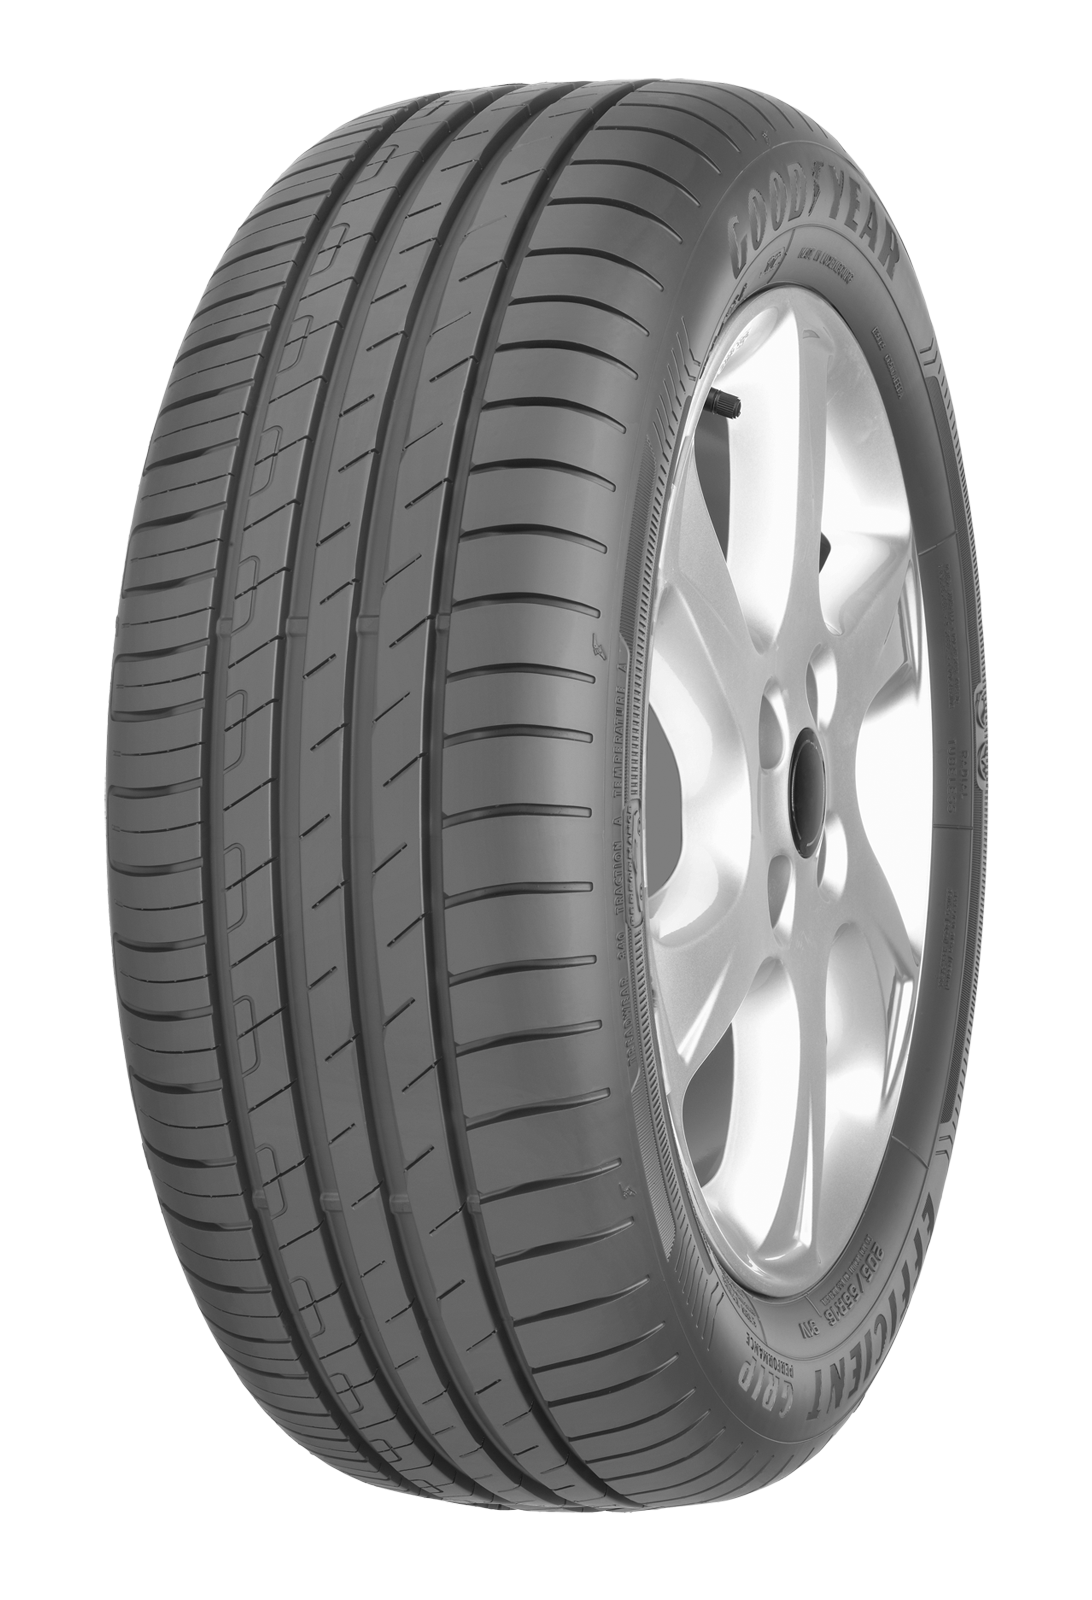 GOODYEAR 225/45 R18 EfficientGrip Performance 95W XL FP